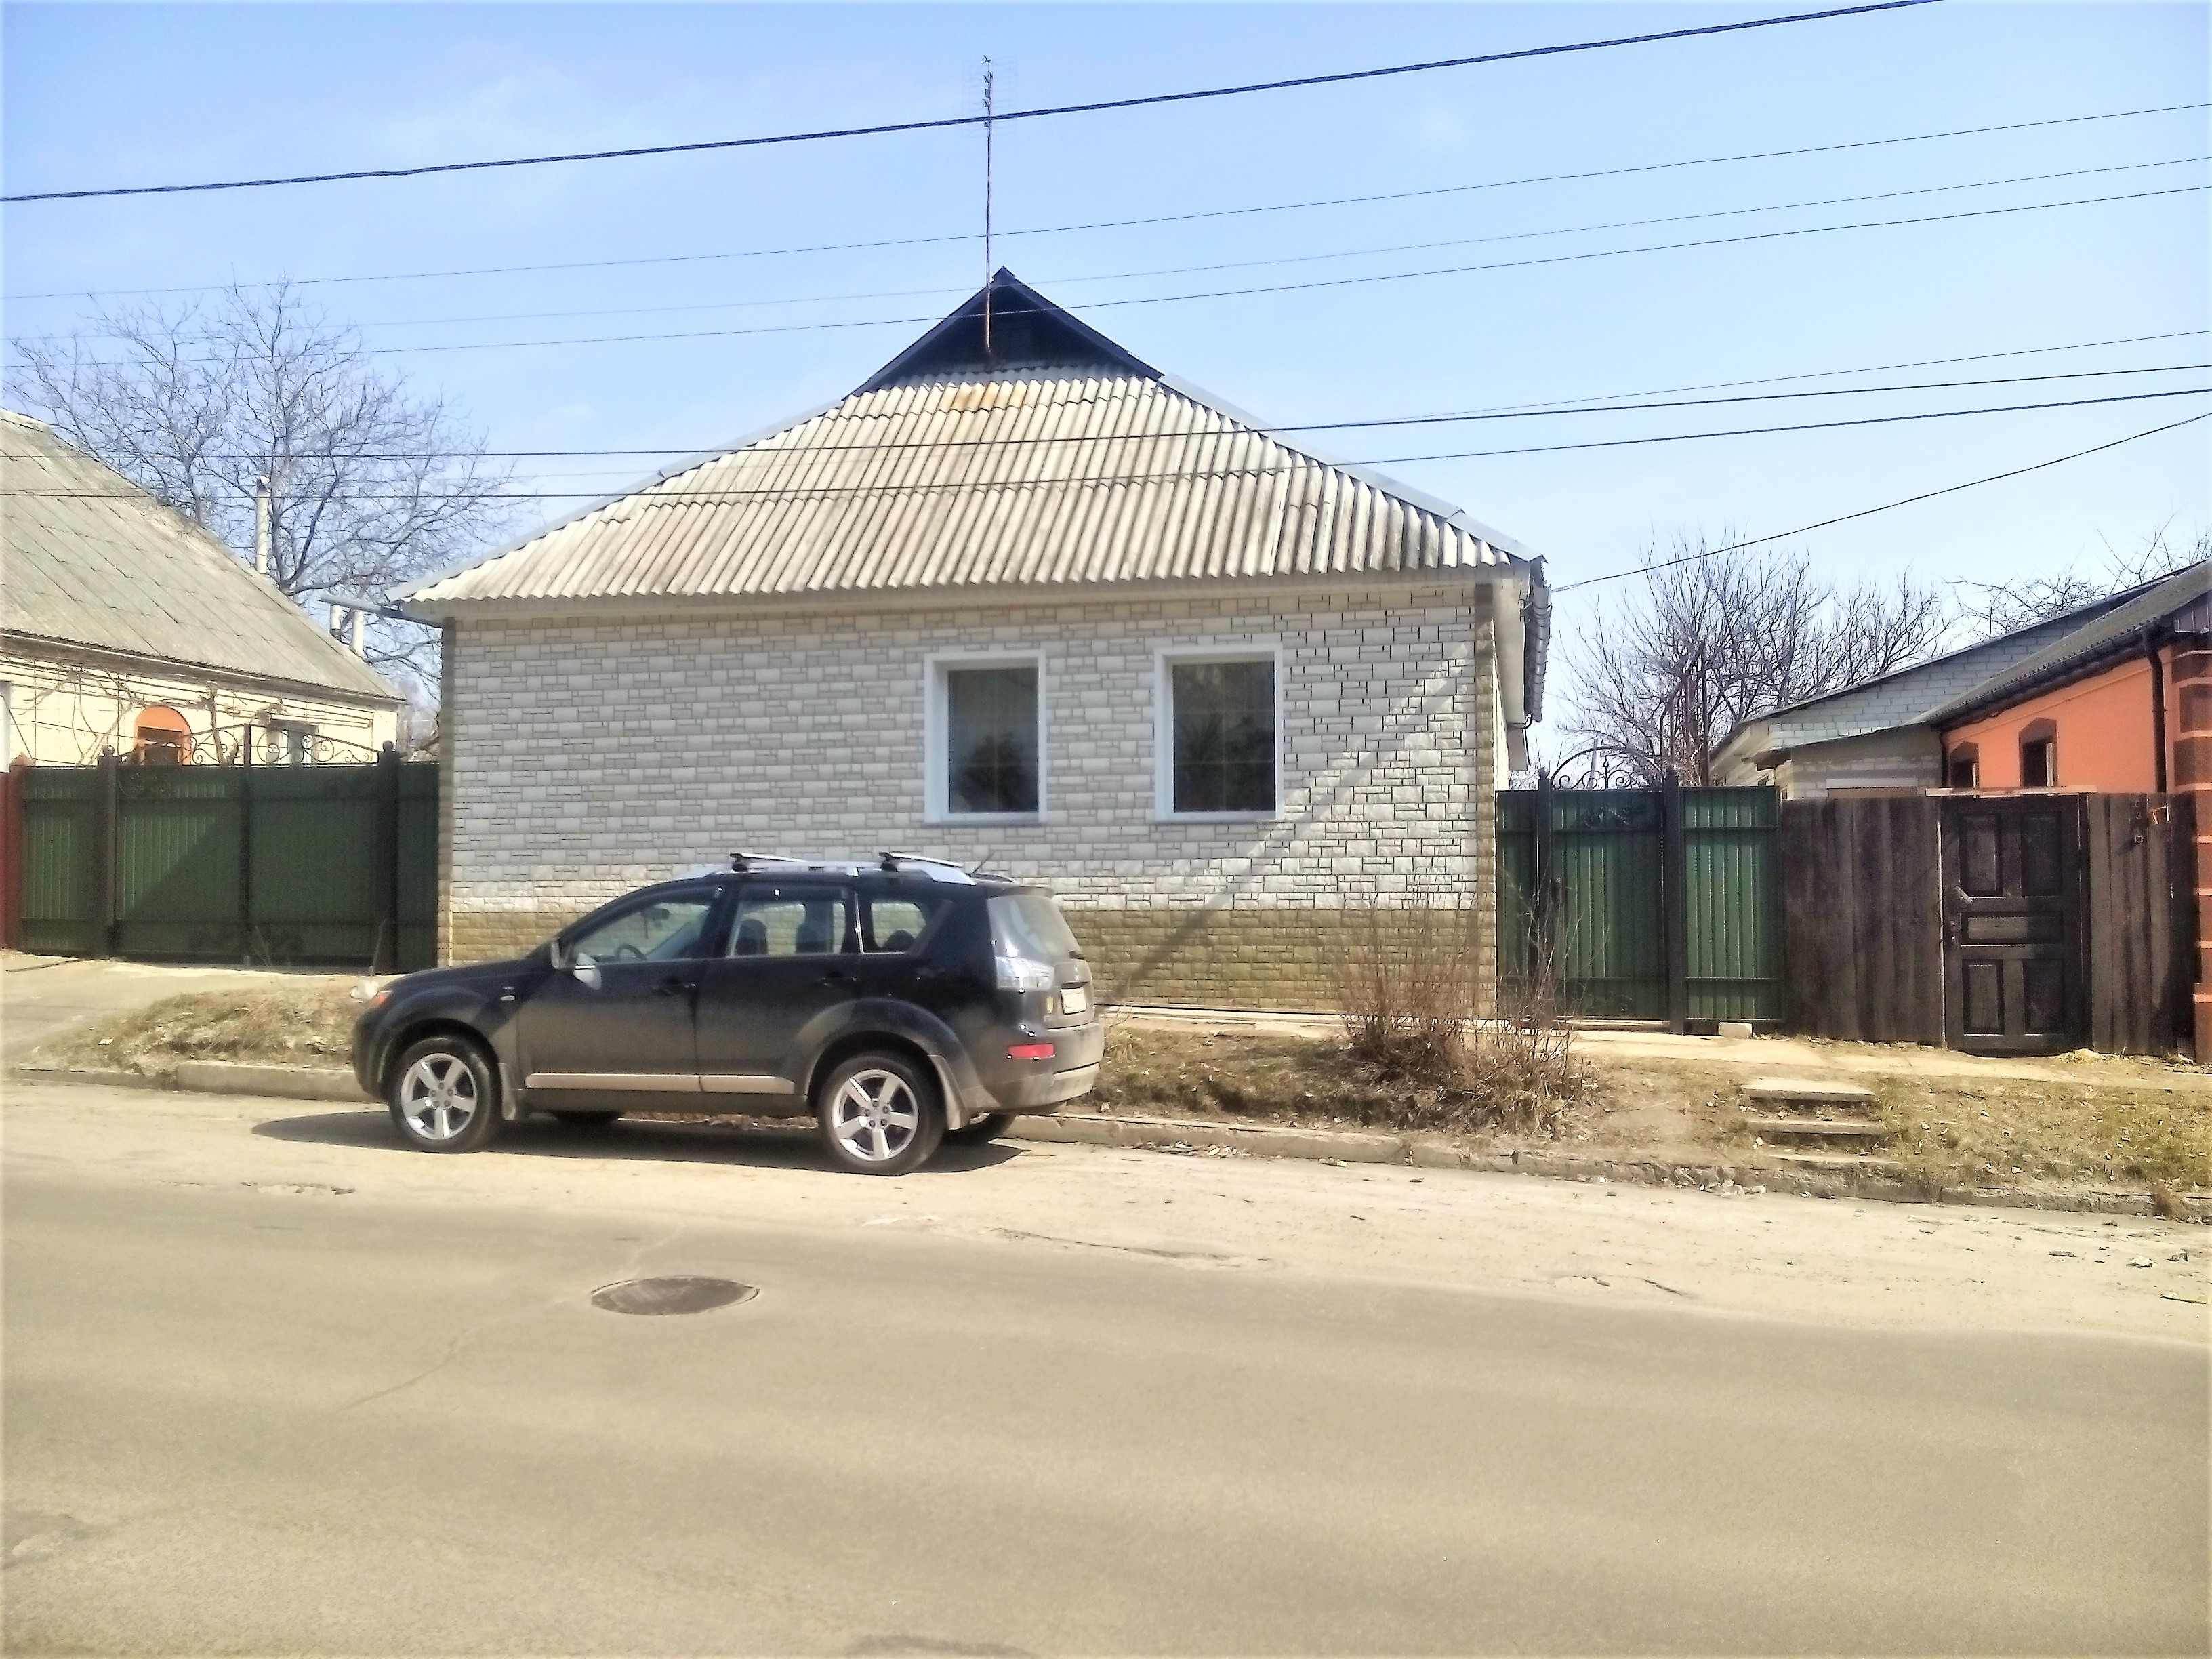 Car dealers of Chernihiv and region: a selection of sites